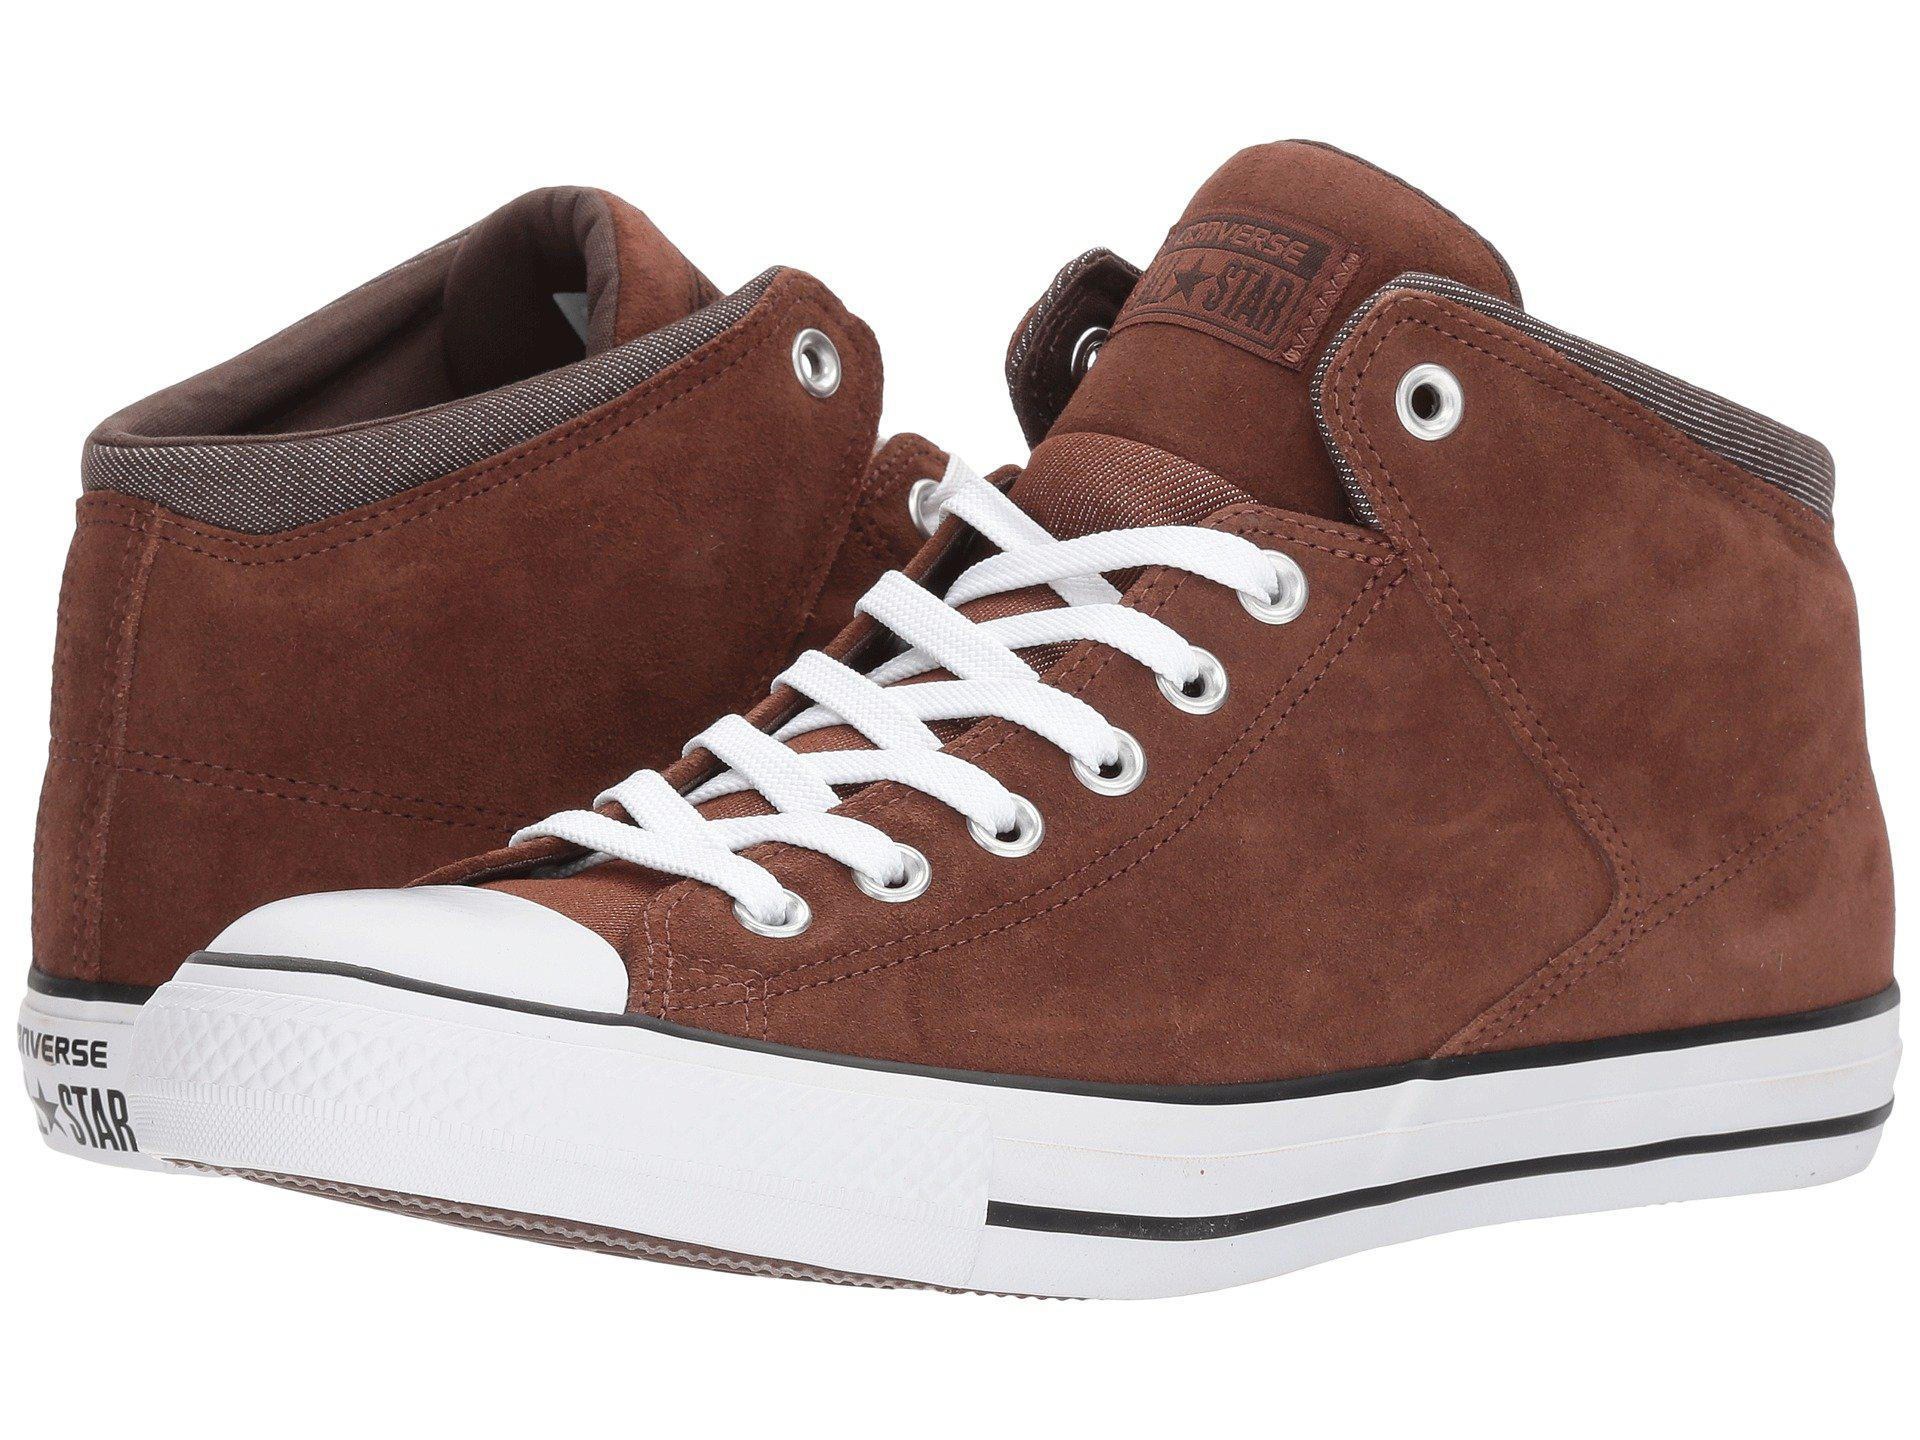 040b17c44e Lyst - Converse Chuck Taylor® All Star® High Street Thermal Suede Hi ...